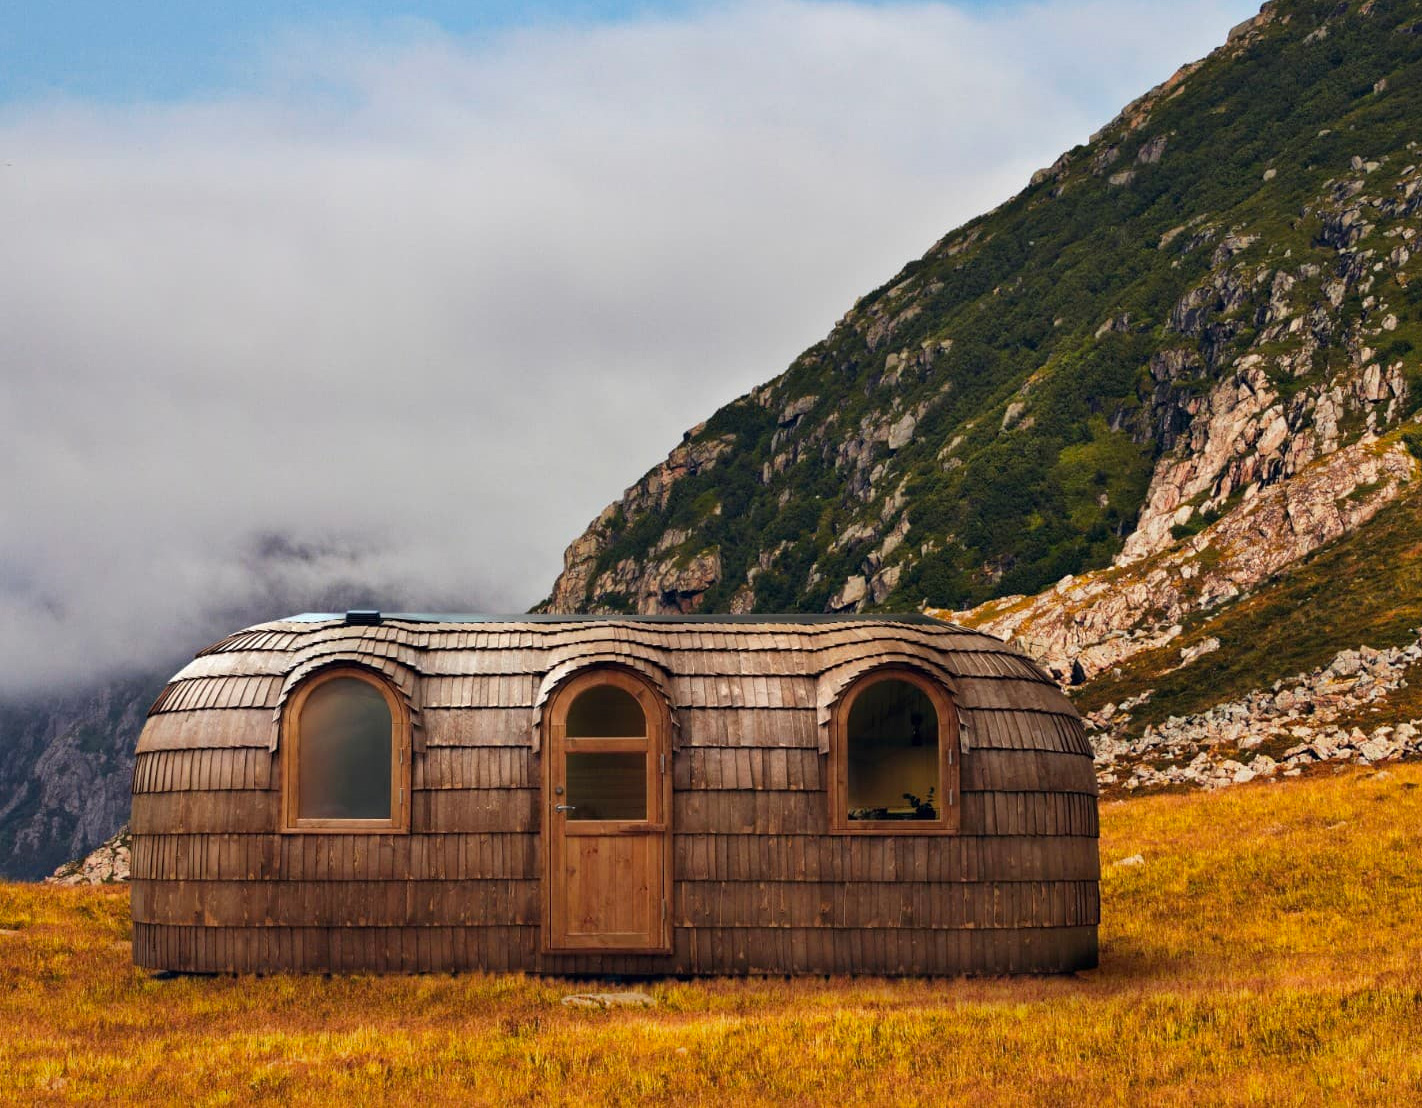 Iglucraft's Pre-Fab Hobbit Houses Blend Into Nature at werd.com